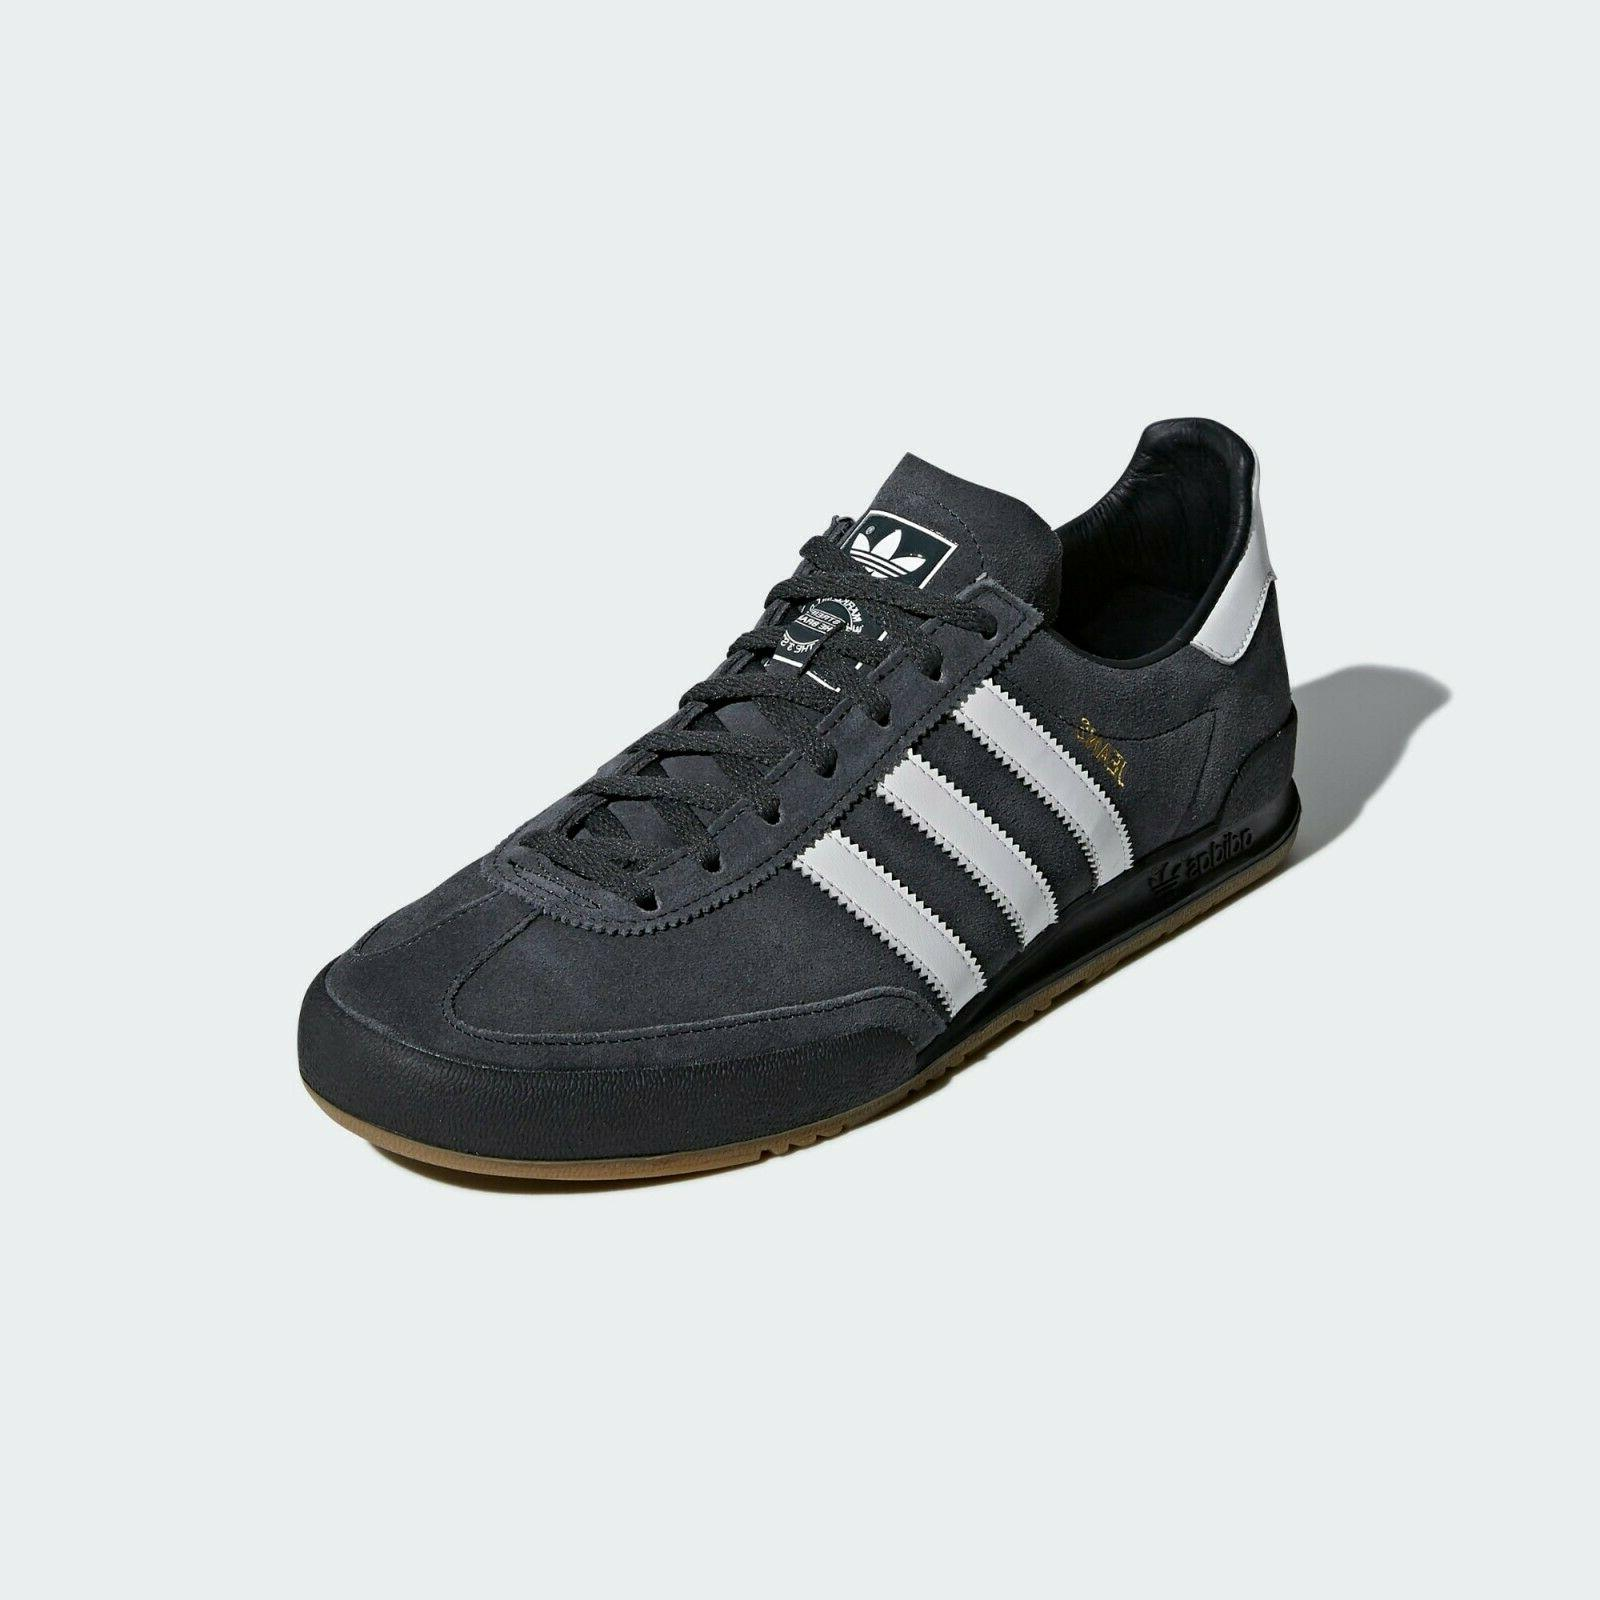 Adidas Originals Trainers Sneakers Grey One CQ2768